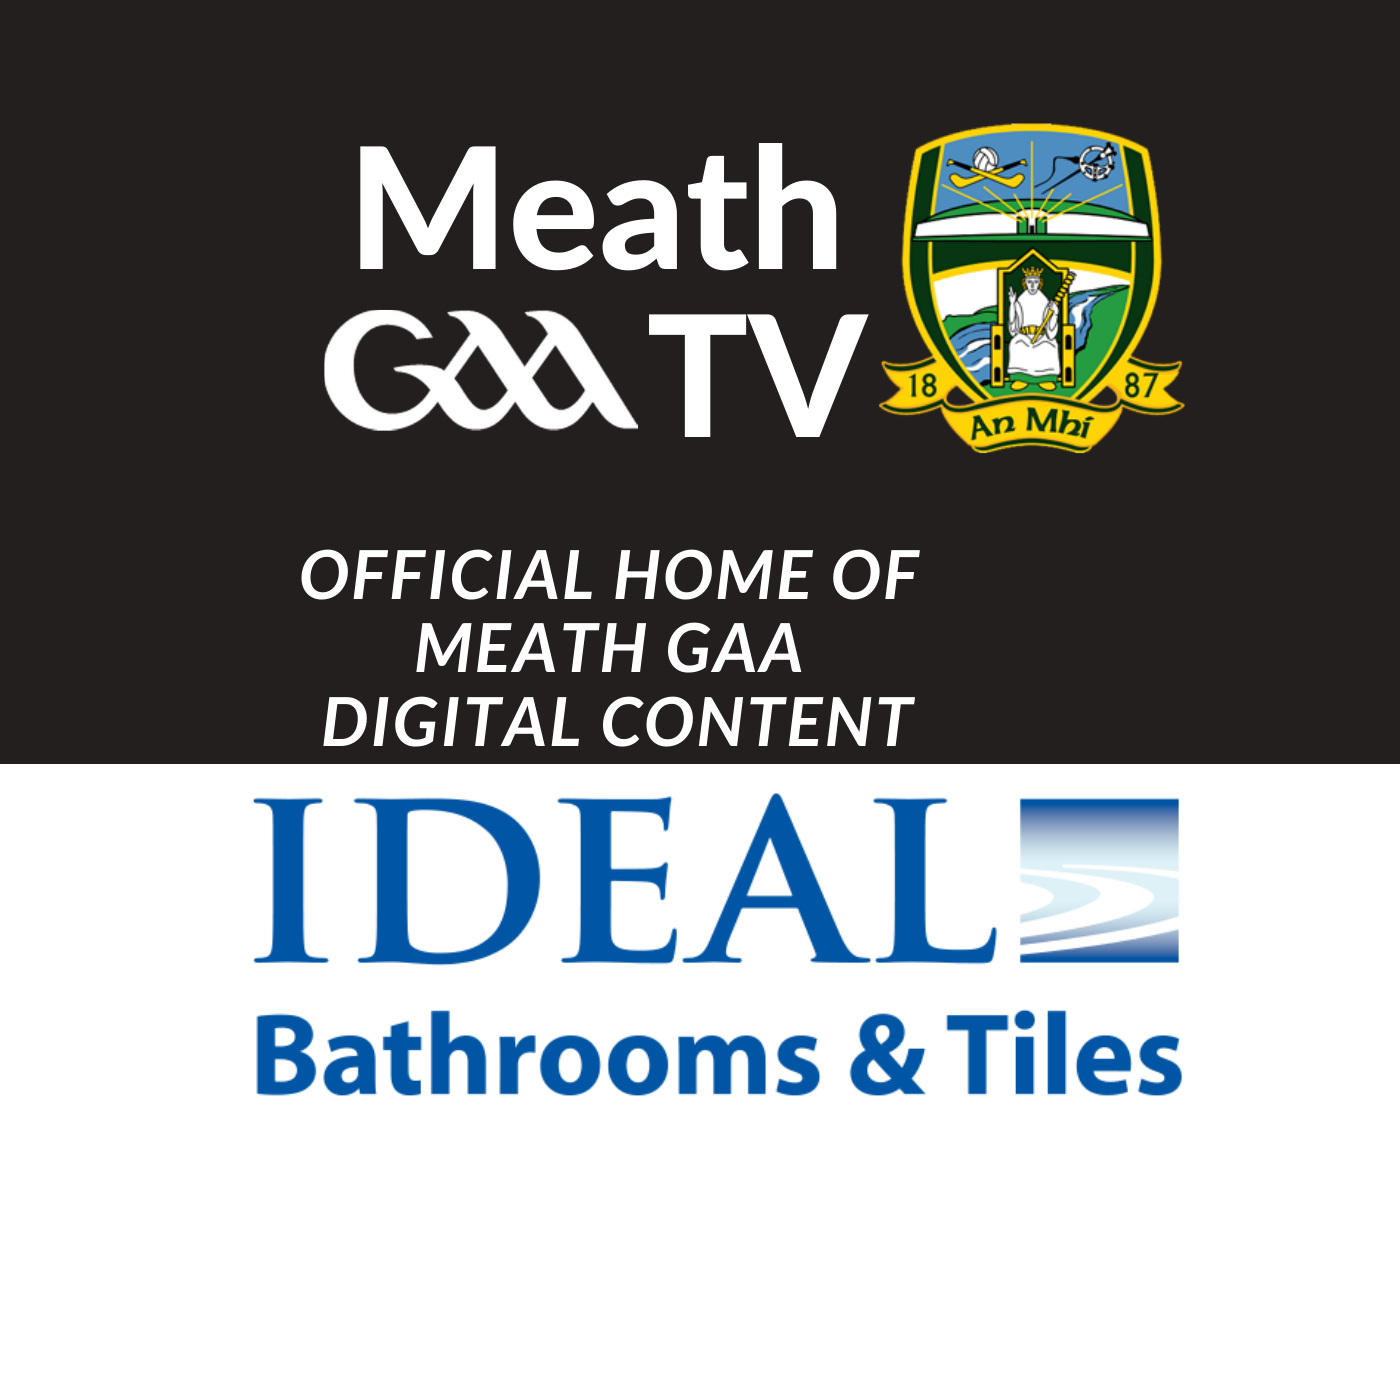 Ideal Bathrooms – Meath GAA TV